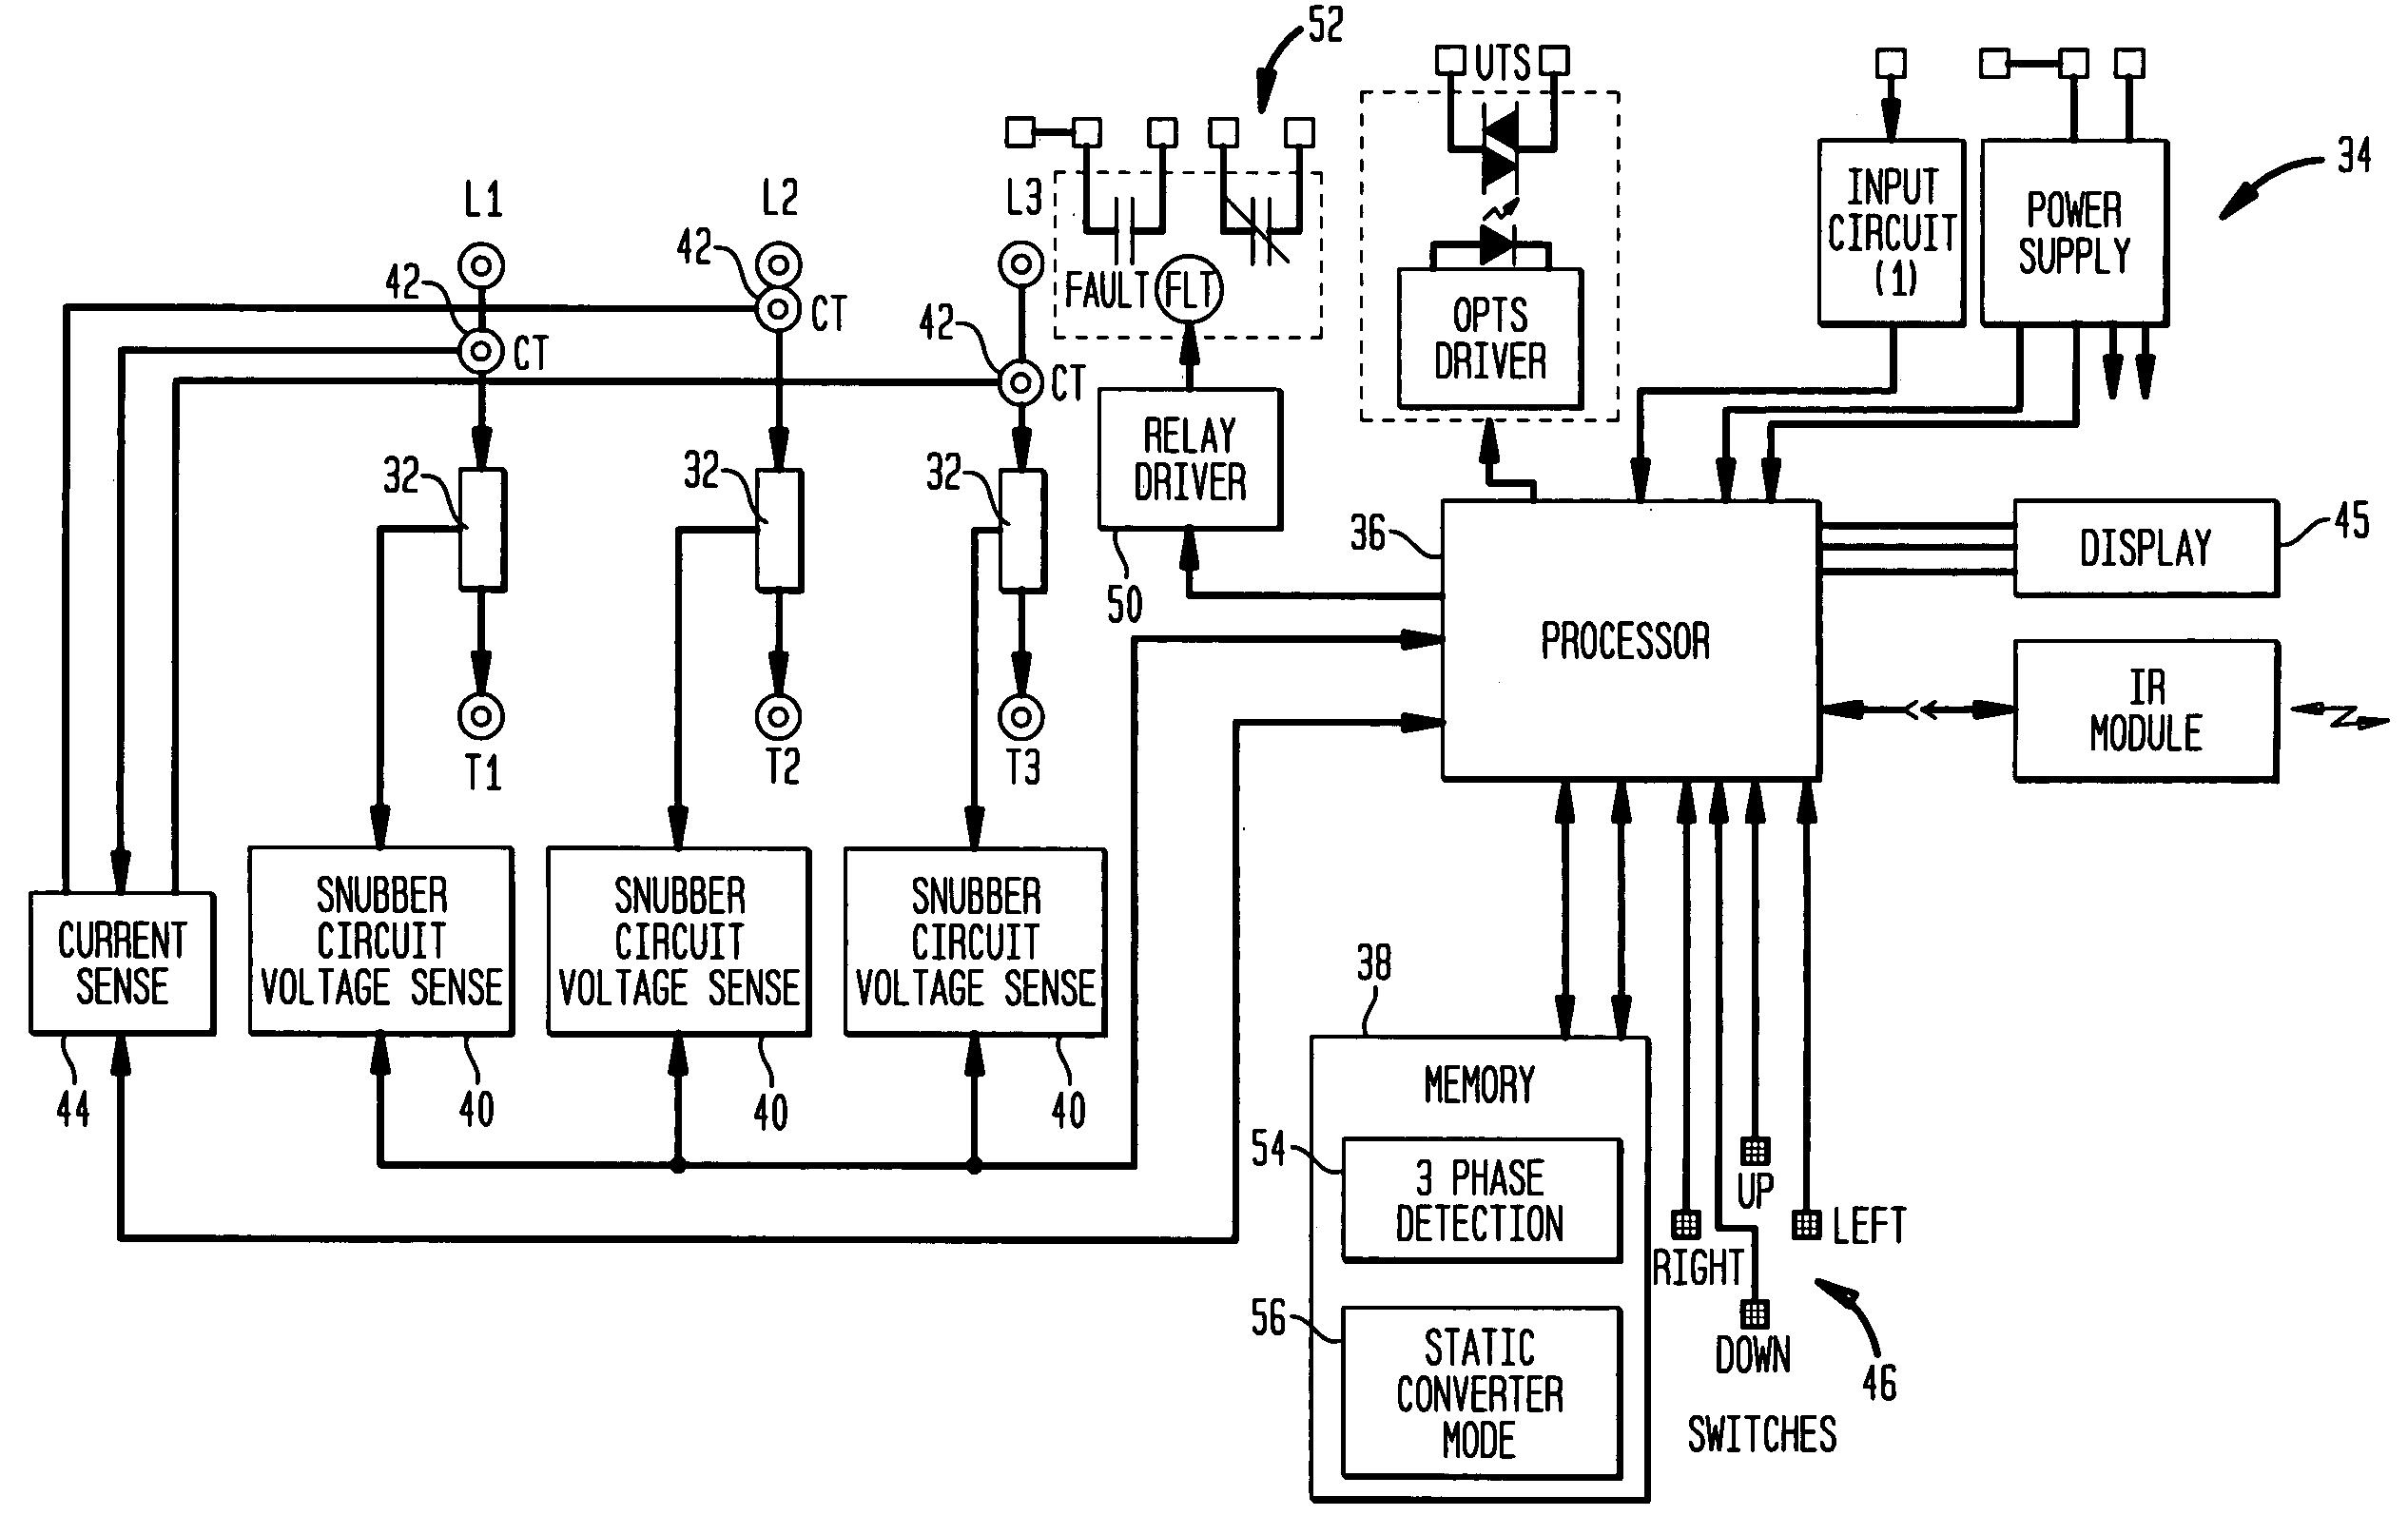 US07859217 20101228 D00000 patent us7859217 system and method for operating a soft starter eaton soft starter wiring diagram at virtualis.co